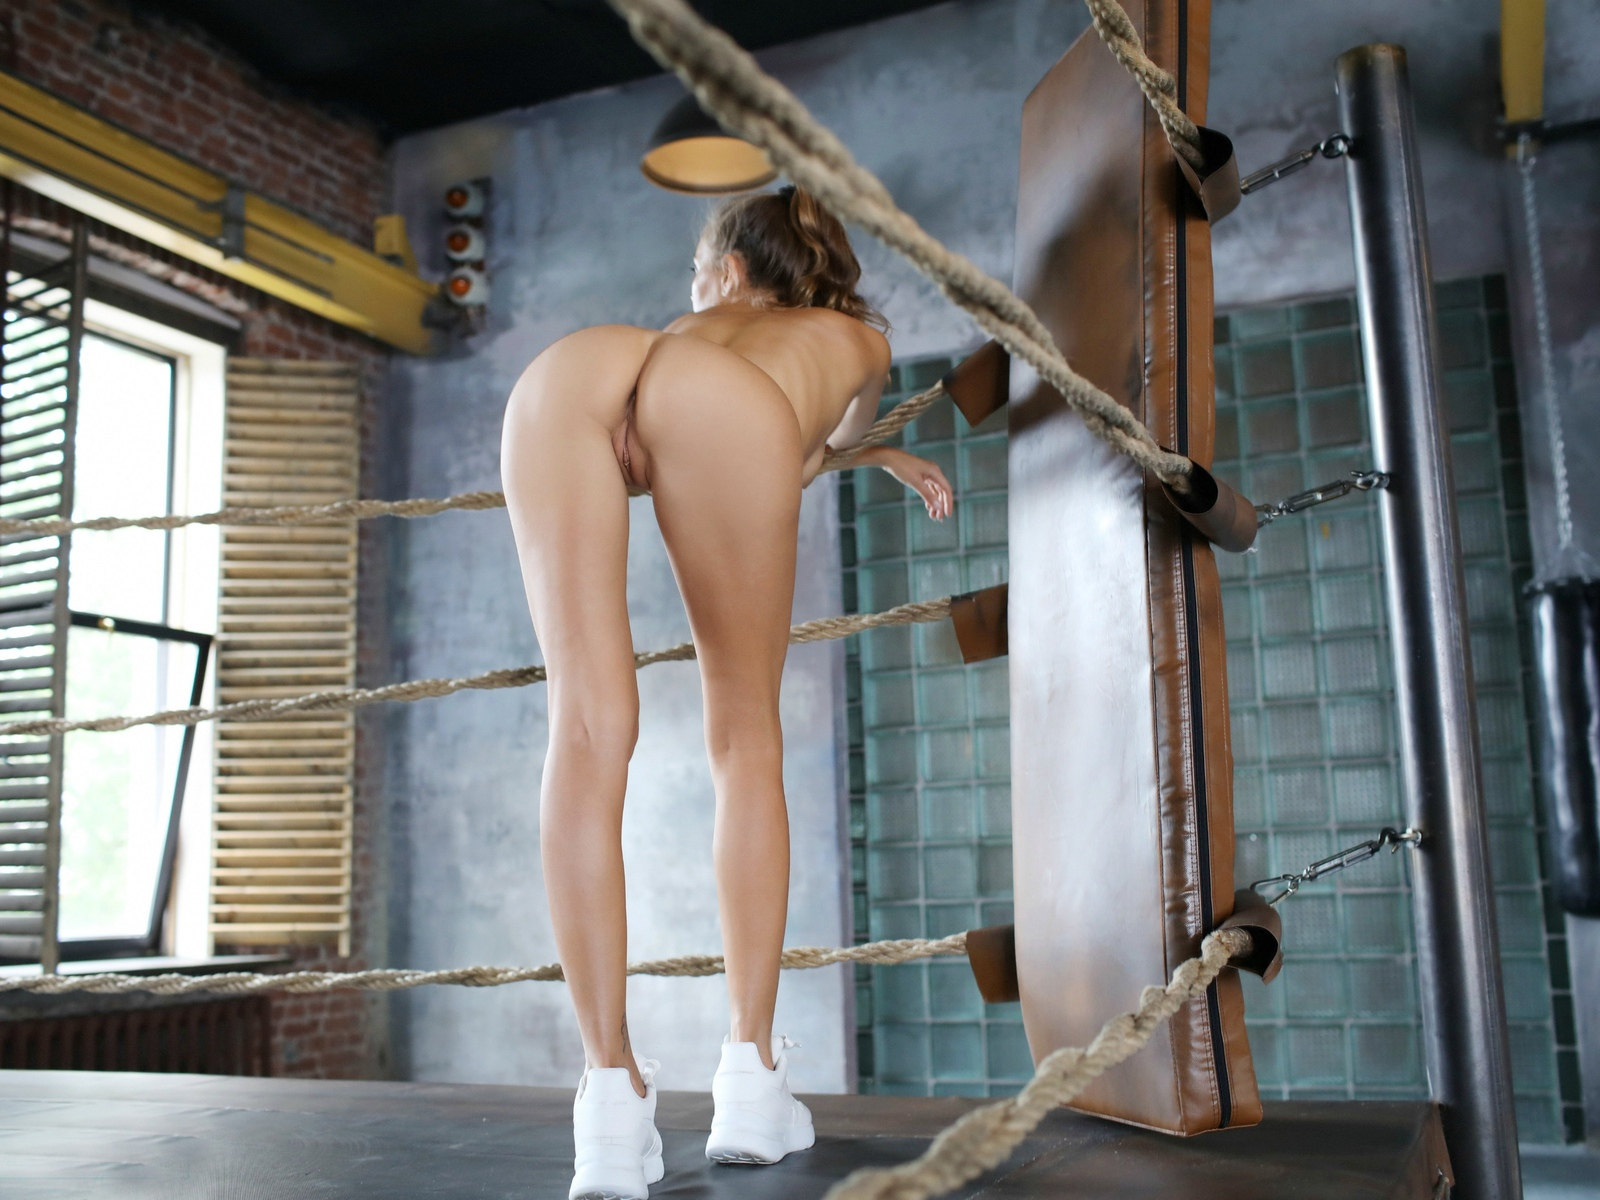 katya clover, clover, mango, caramel, mango a, brunette, boxing gym, naked, boobs, shaved pussy, labia, ass, anus, running shoes, hiq